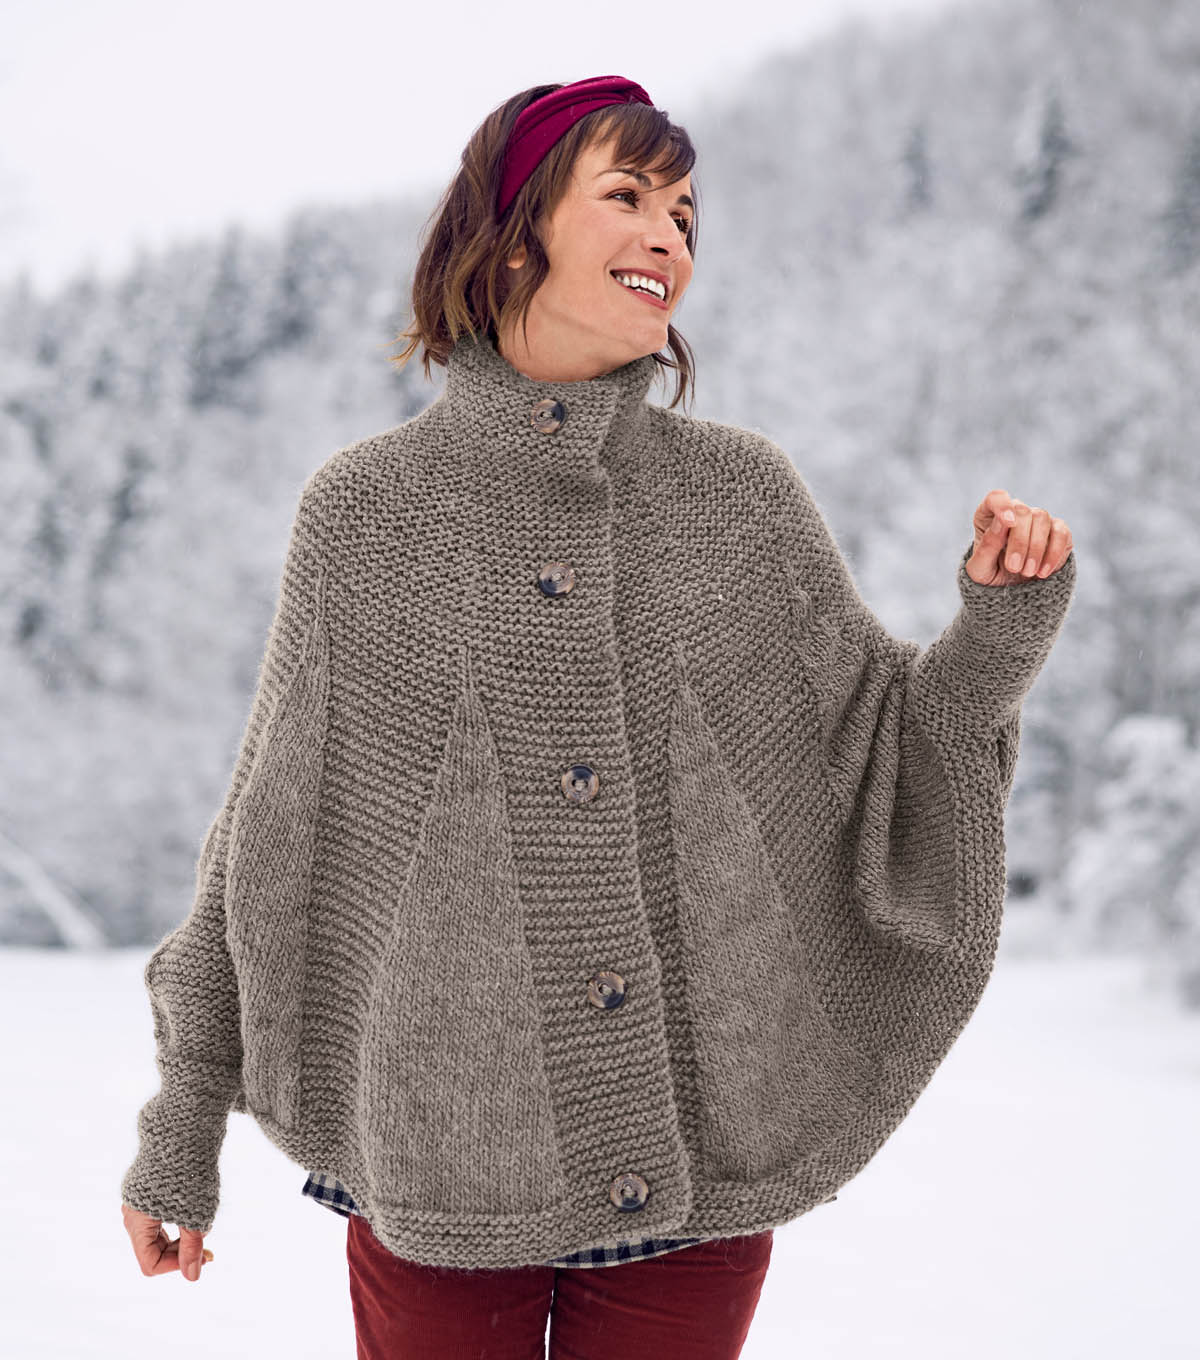 How To Knit a Poncho Cape | JOANN